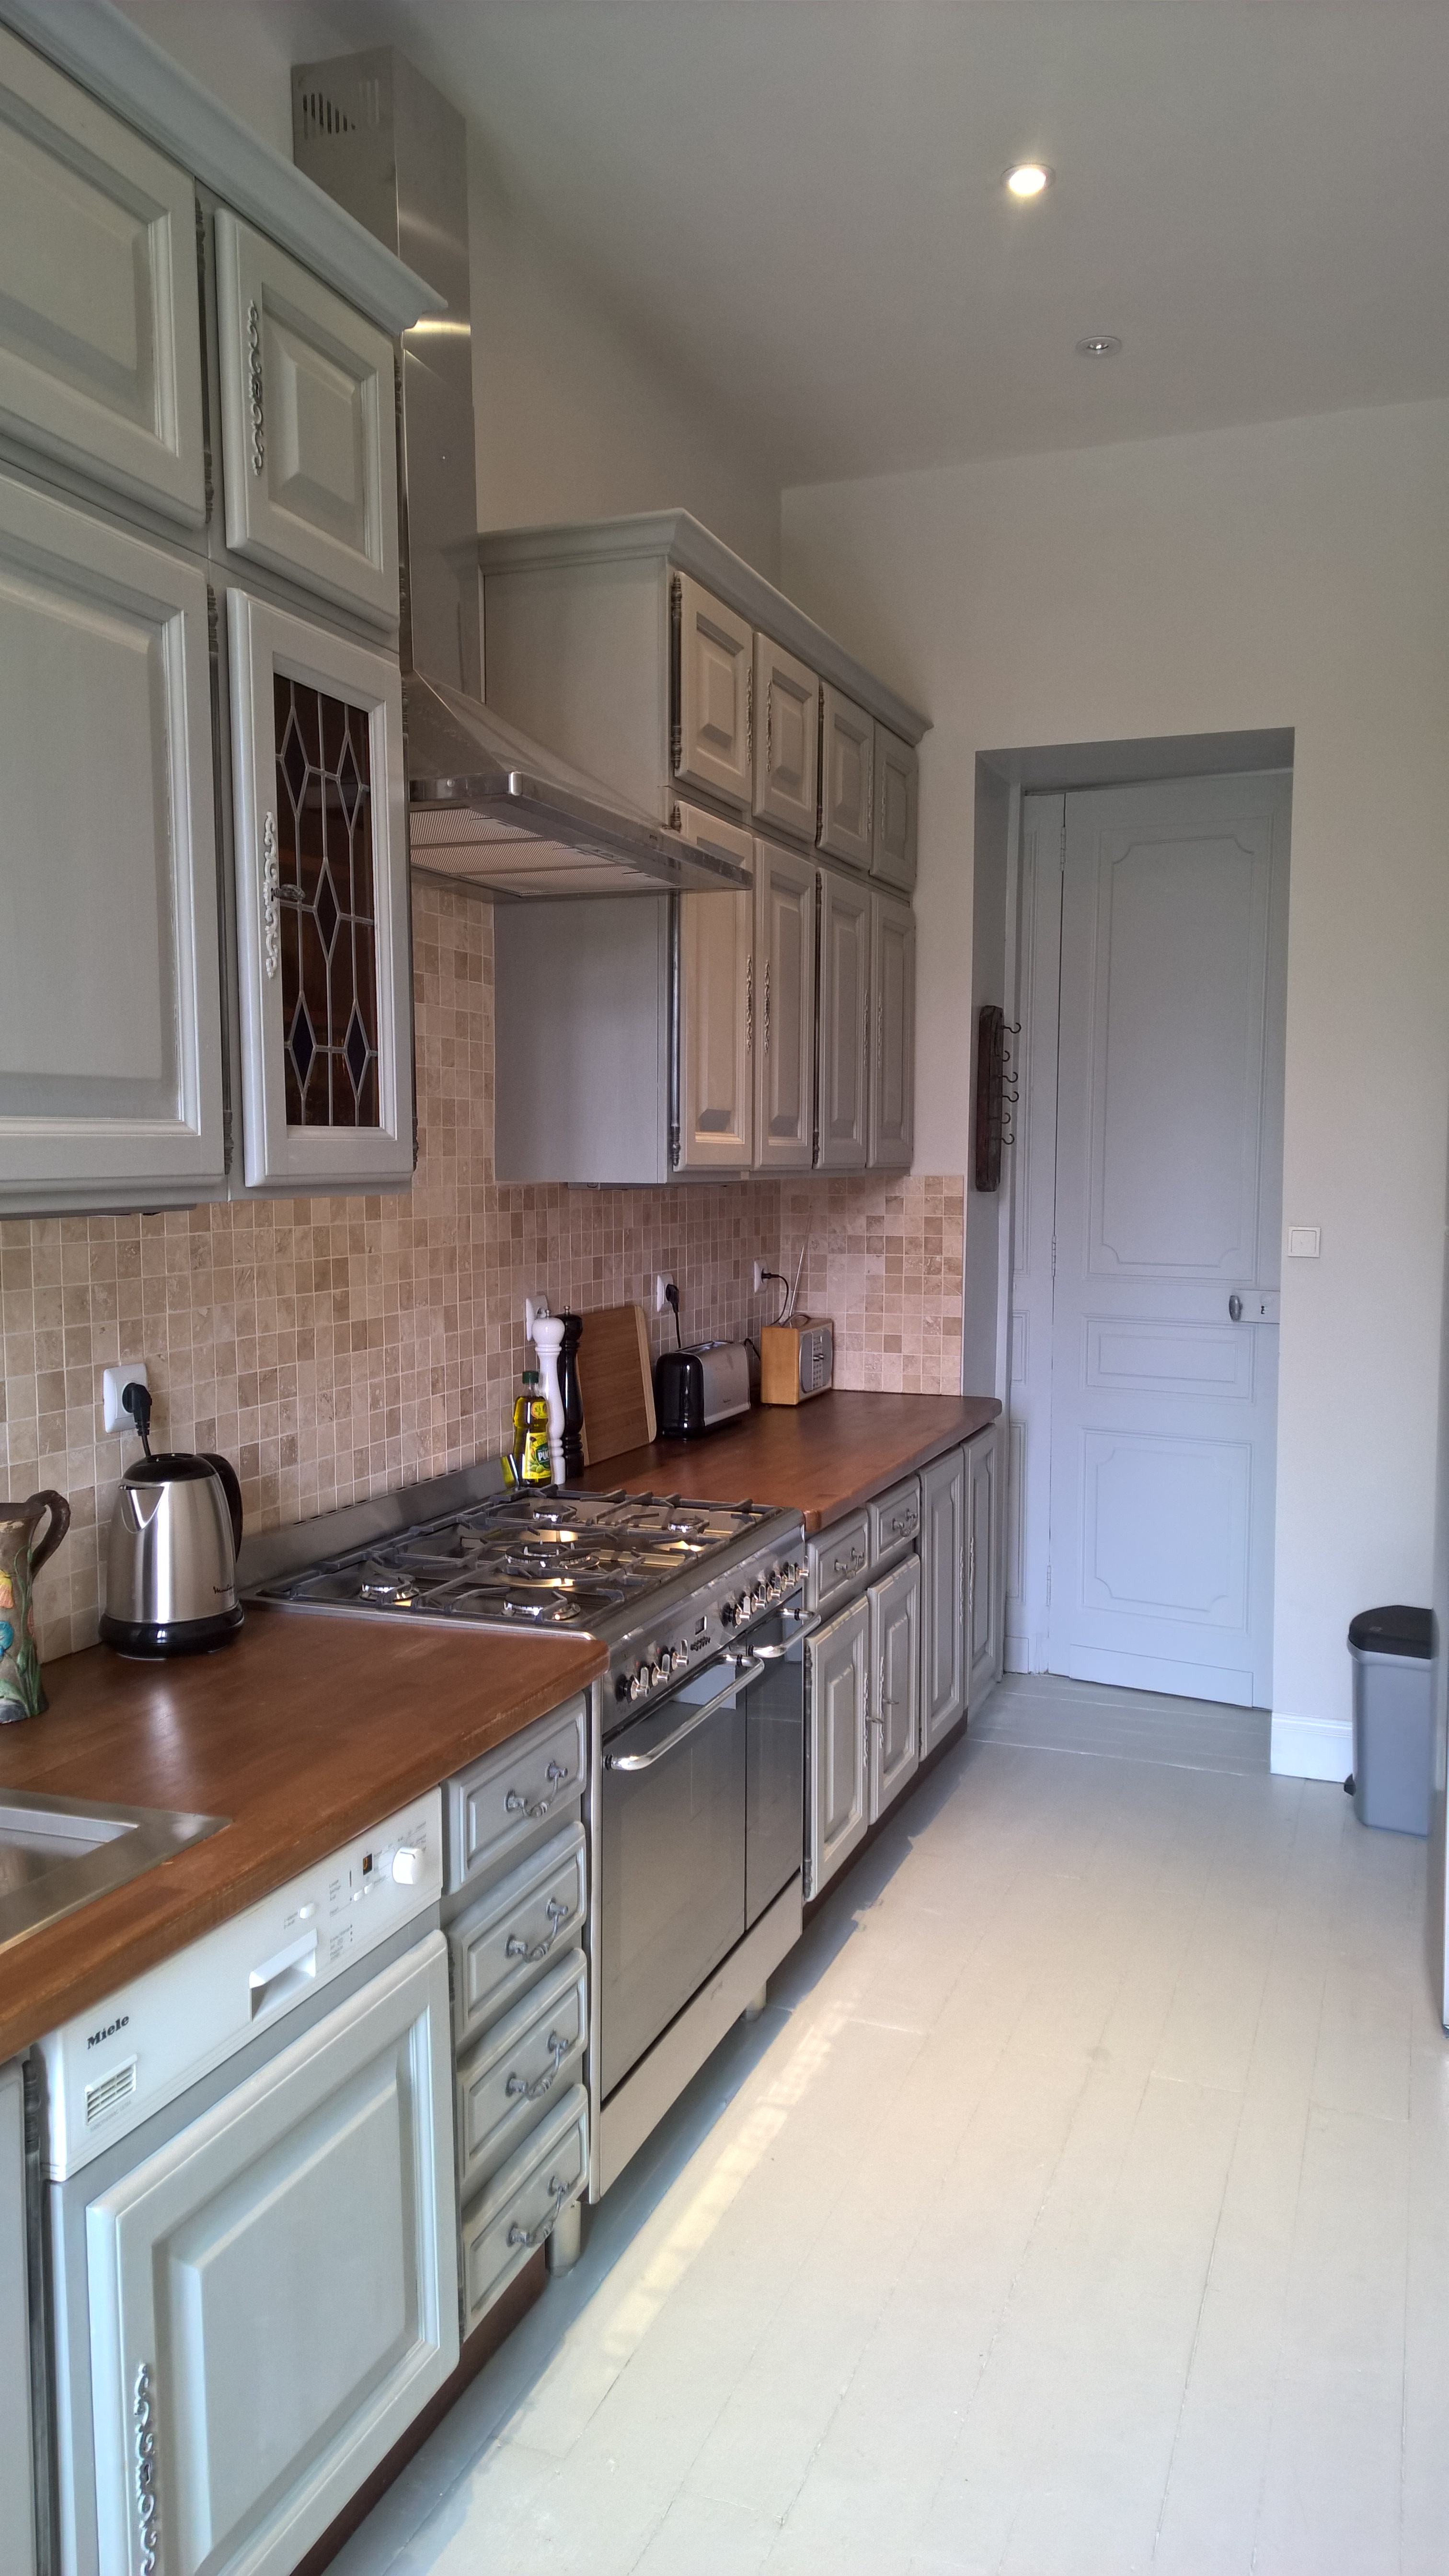 accommodation to rent for holiday in south west of France